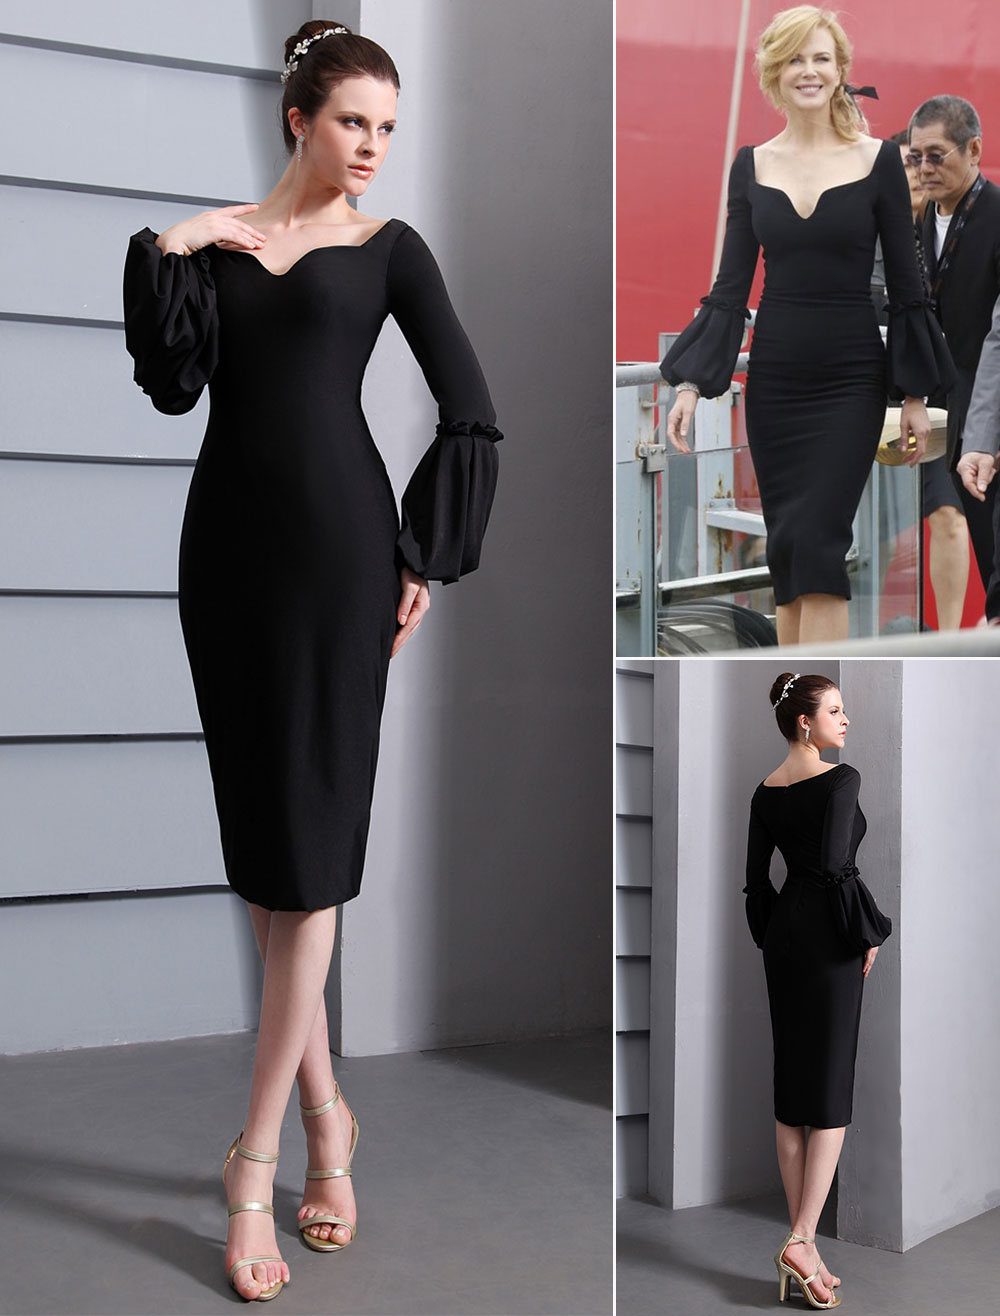 Black Celcebrity Dress Short Scoop Neck Sheath Cannes Film Festival